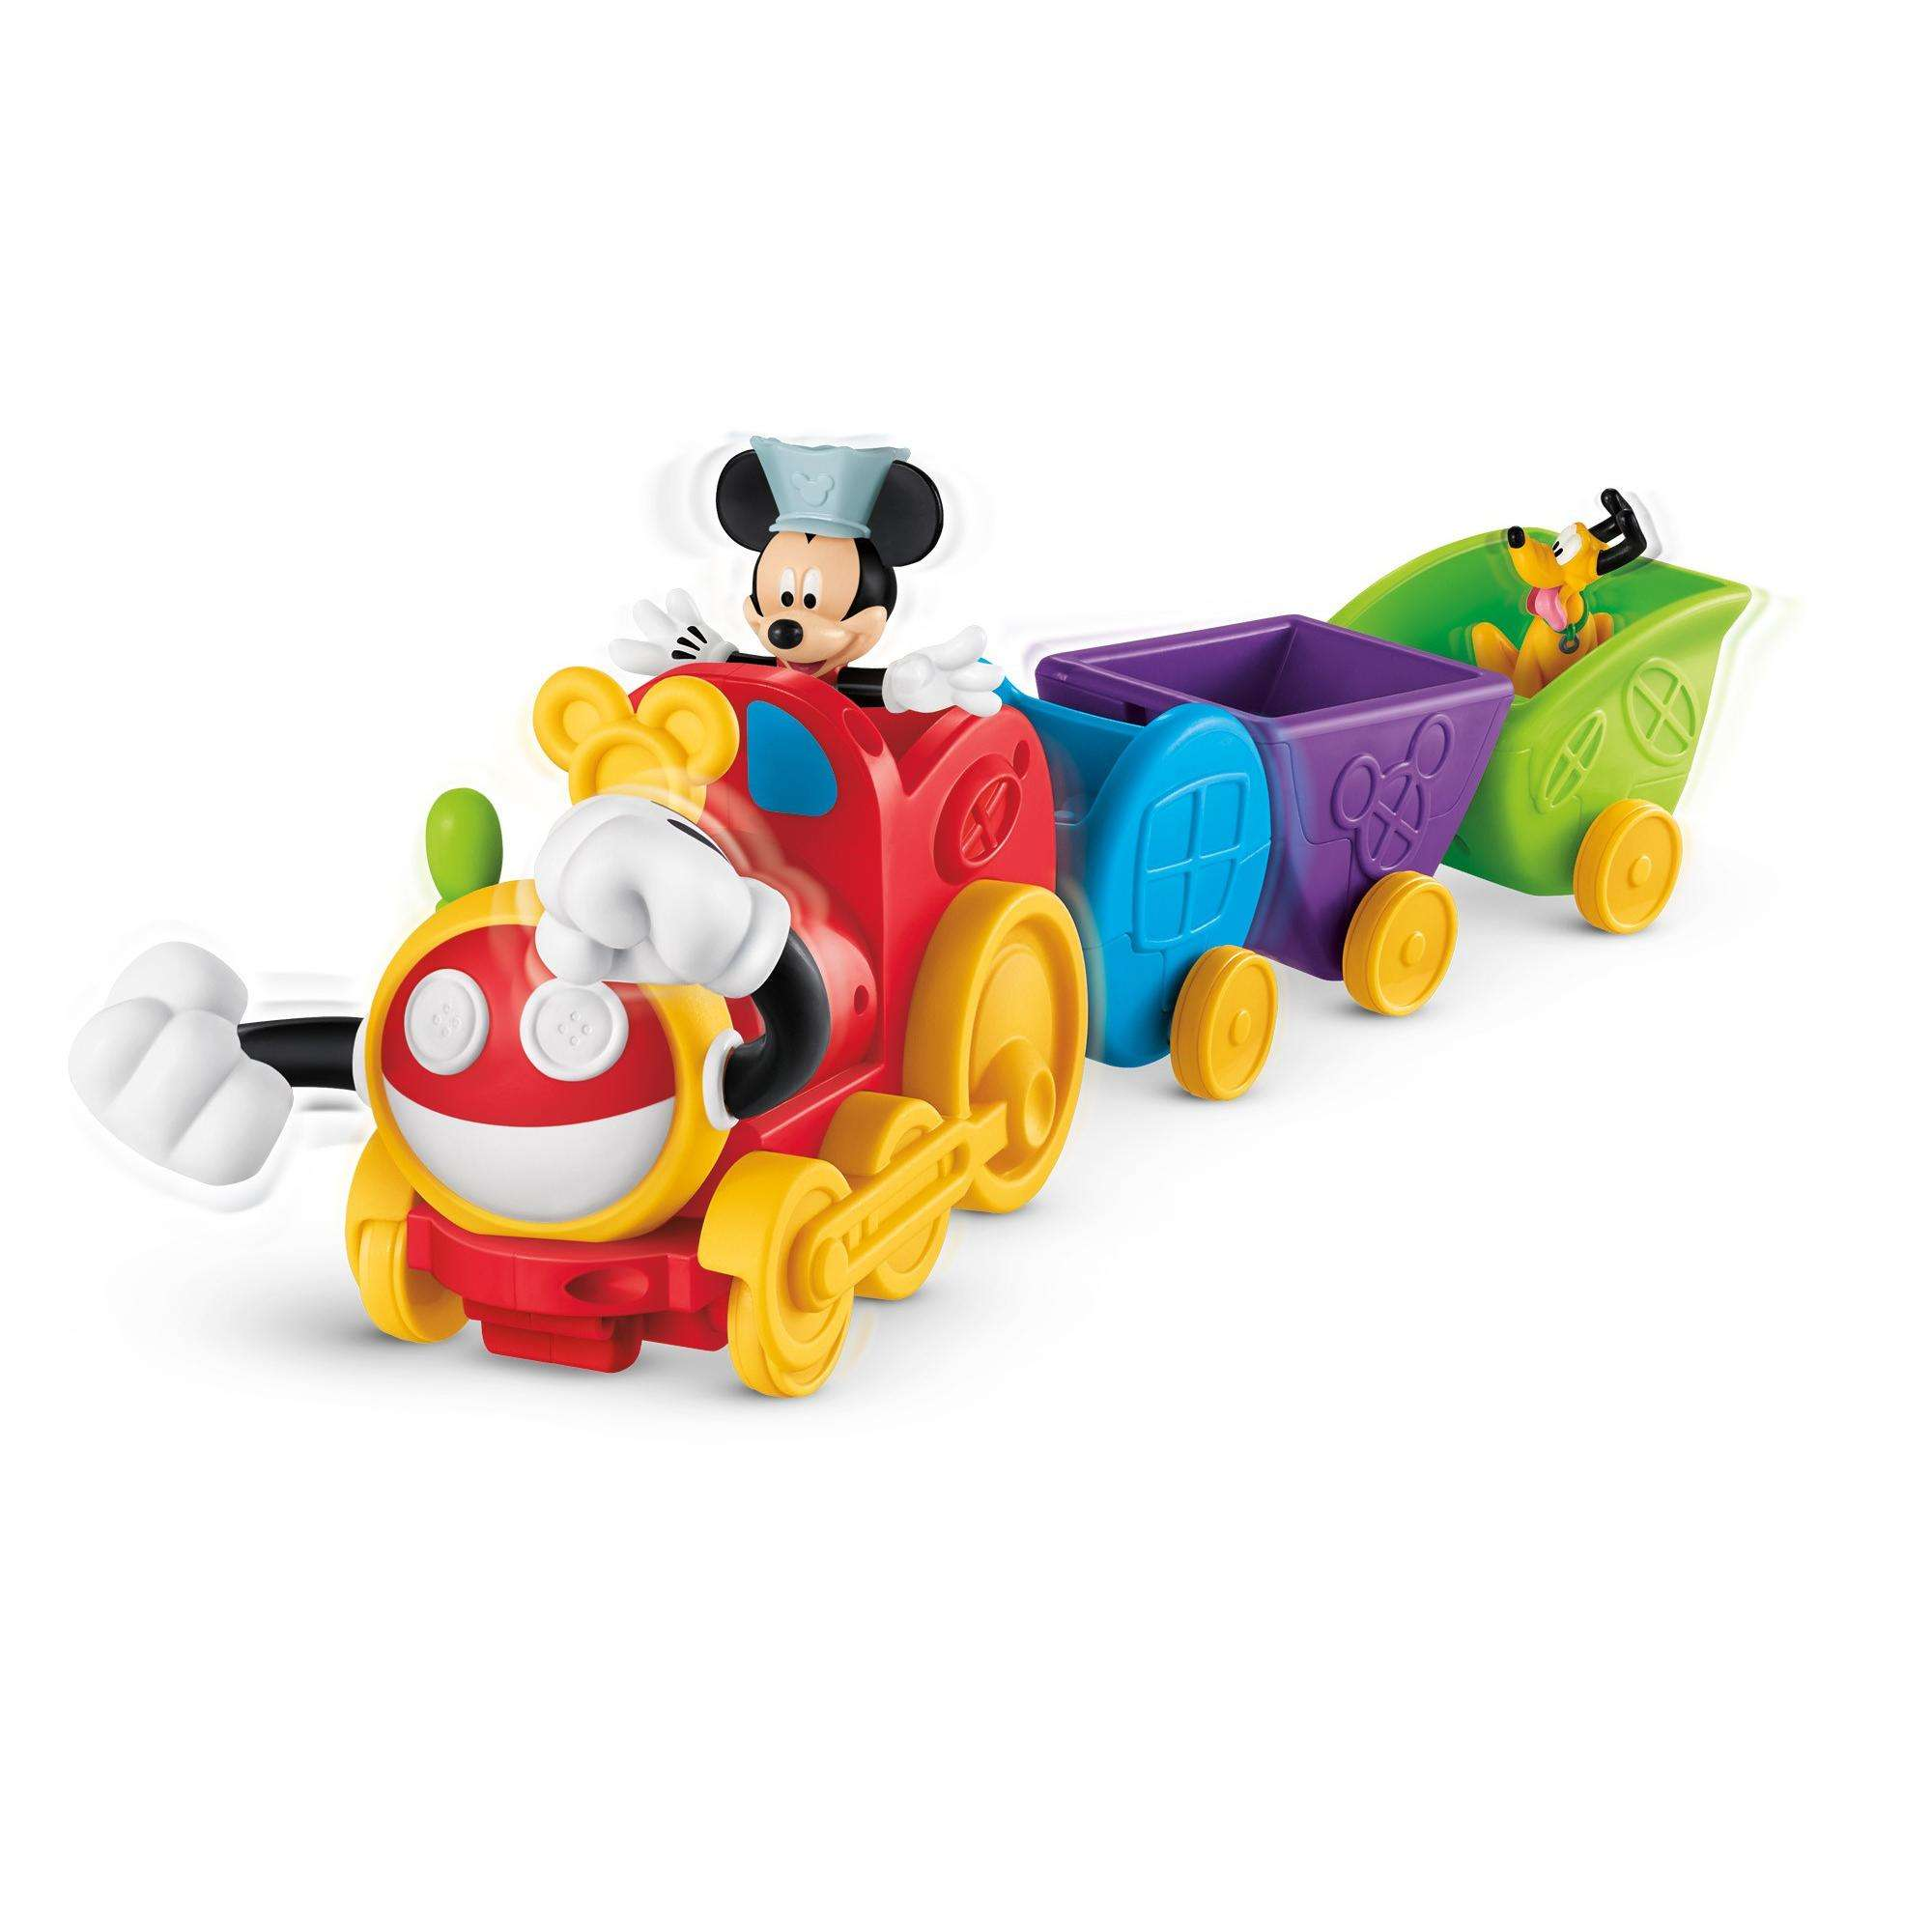 Disney Mickey Mouse Clubhouse Wobble Bobble Choo Choo by FISHER PRICE